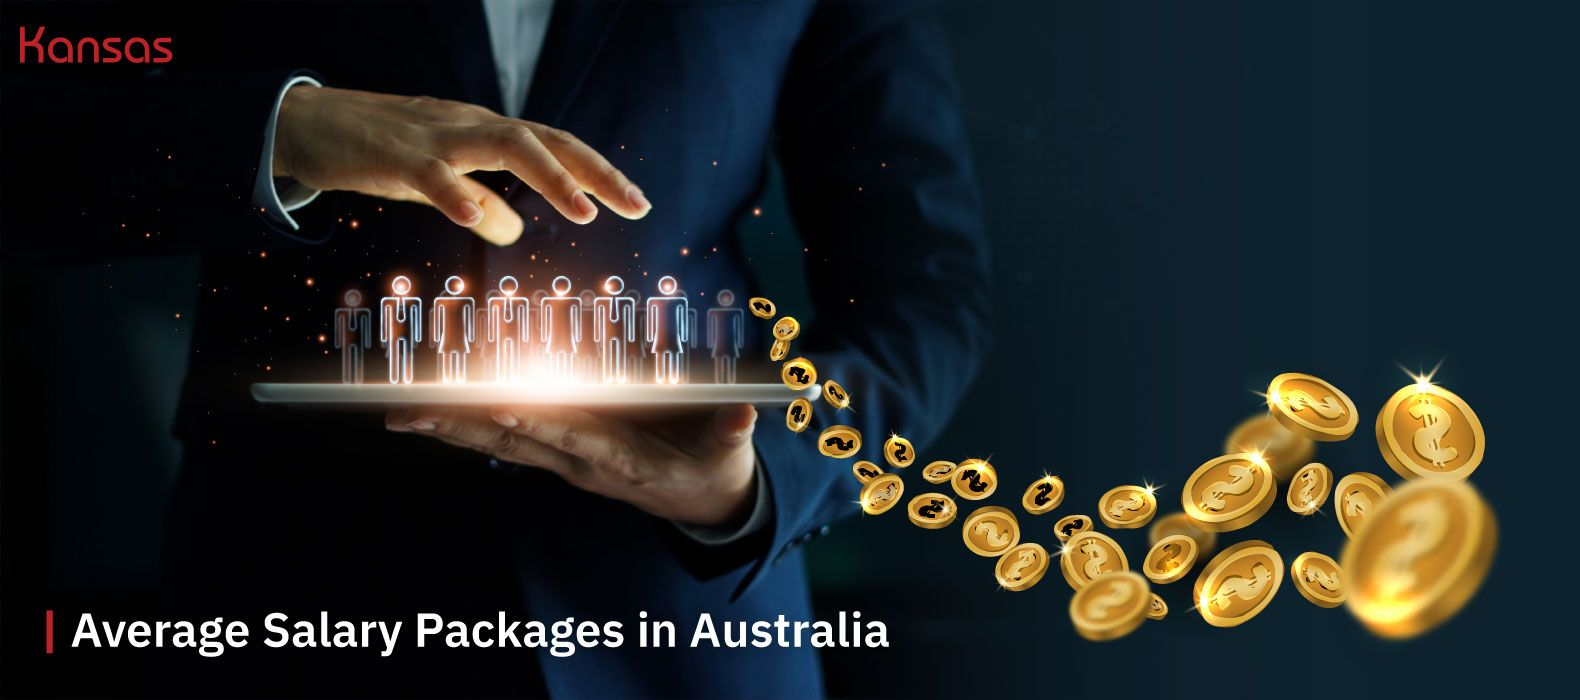 Average-Salary-Packages-for-different-Occupations-in-Australia